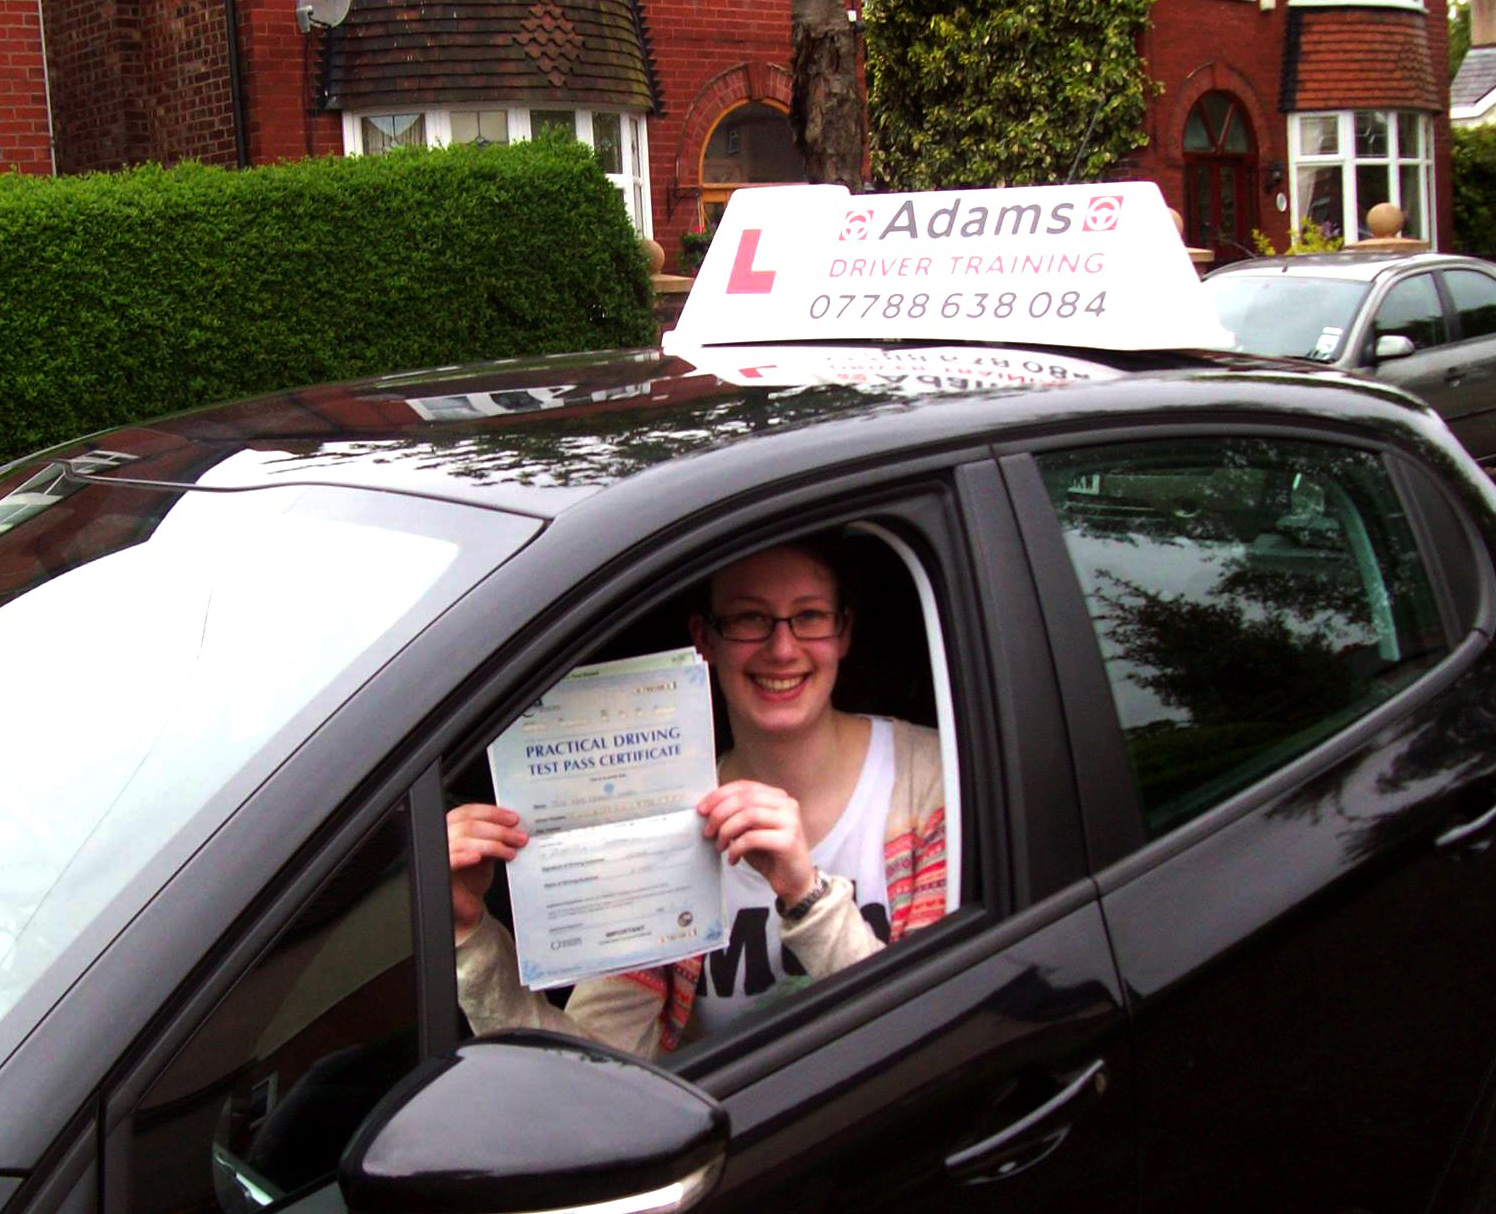 Why Become a Driving Instructor?